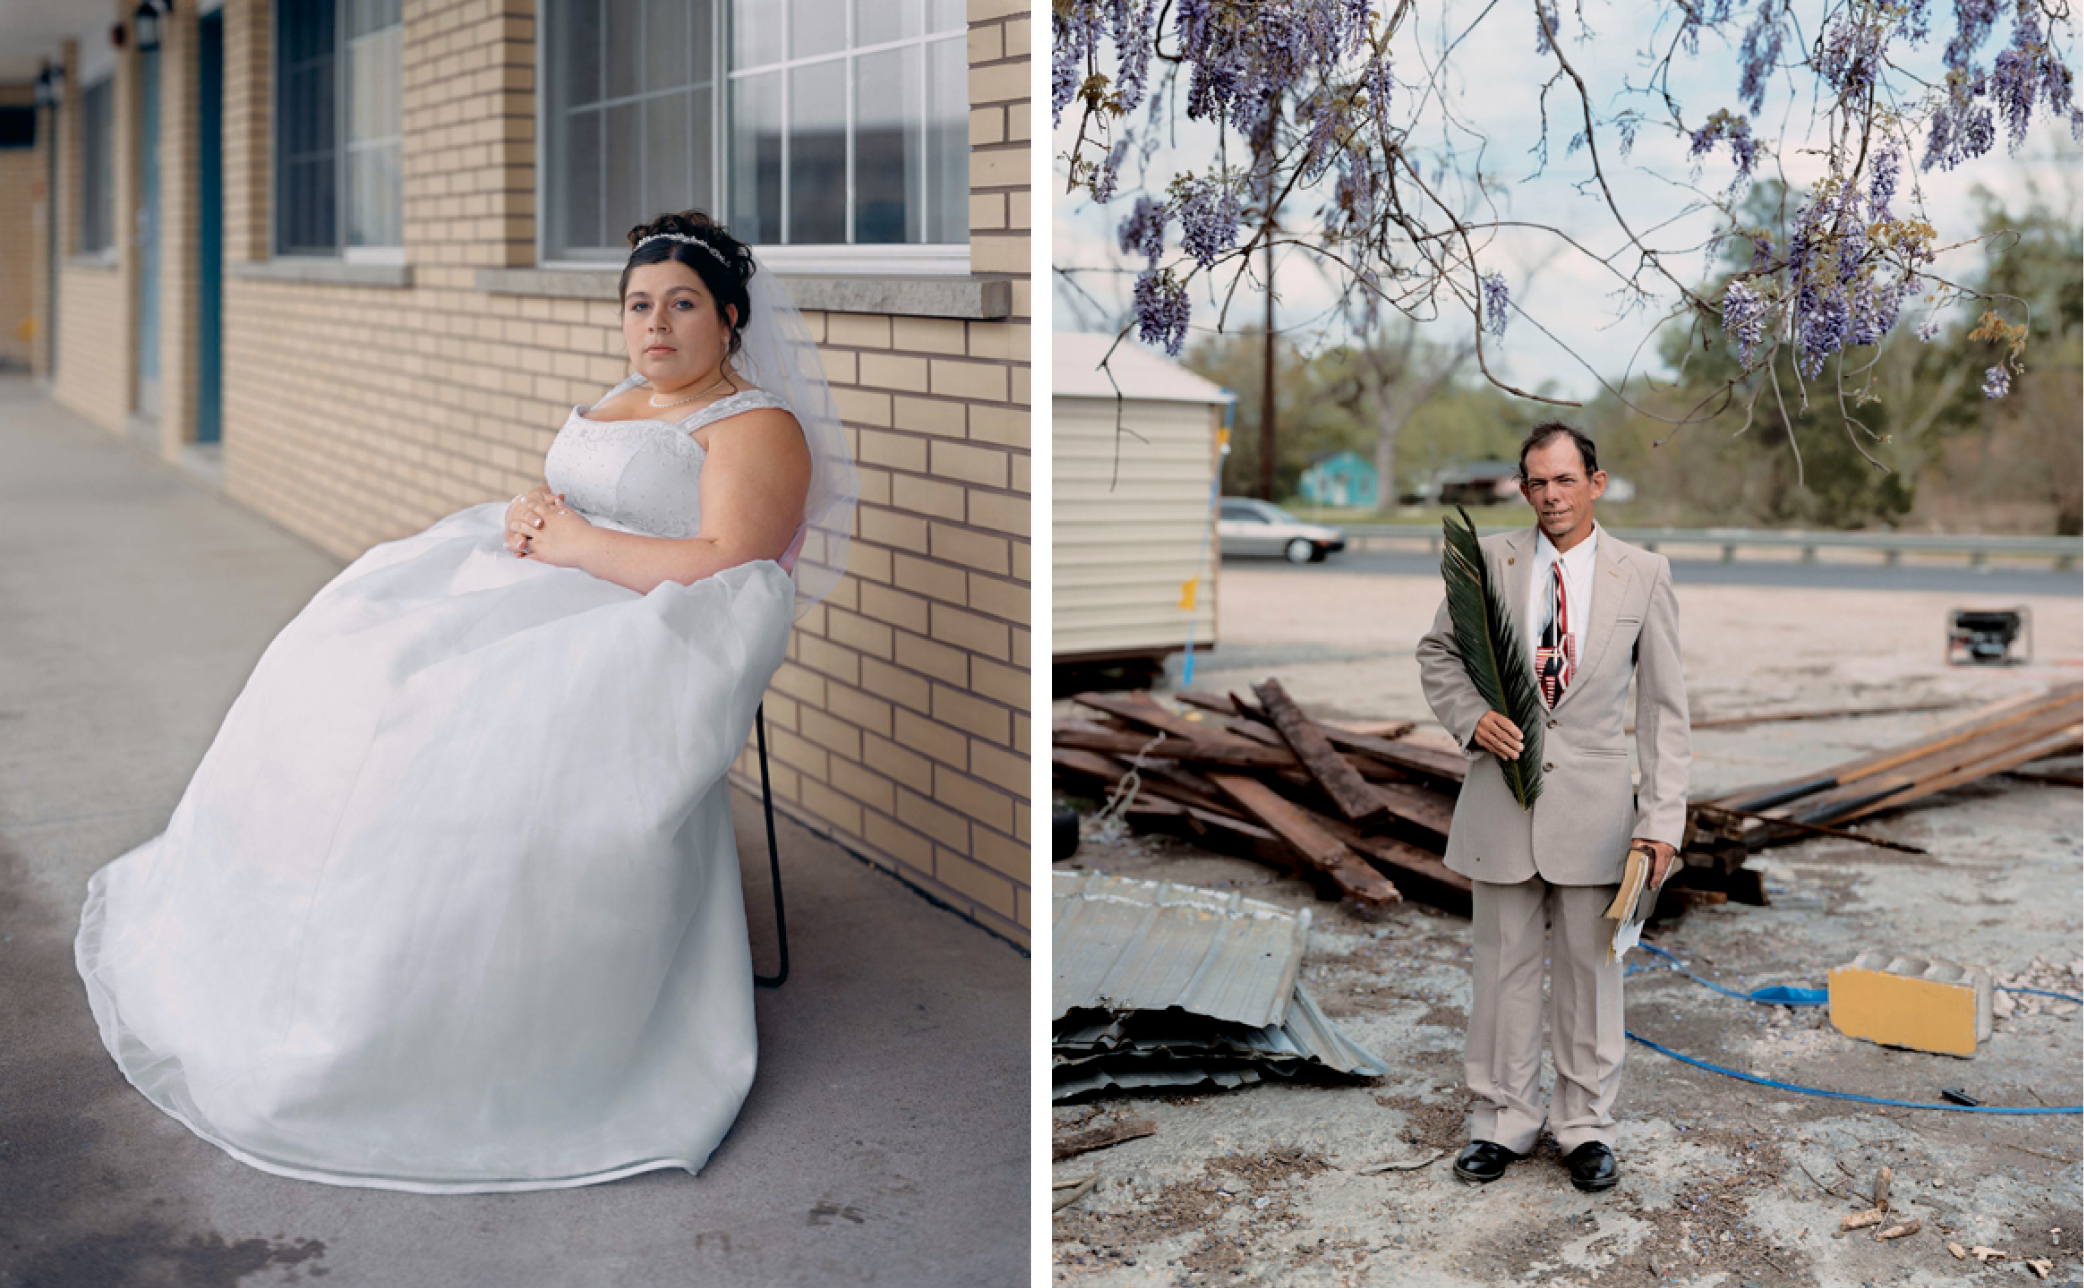 Left: Melissa, 2005, from Niagara © Alec Soth.  Right: Patrick, Palm Sunday, Baton Rouge, Louisiana, 2002, from Sleeping by the Mississippi © Alec Soth.